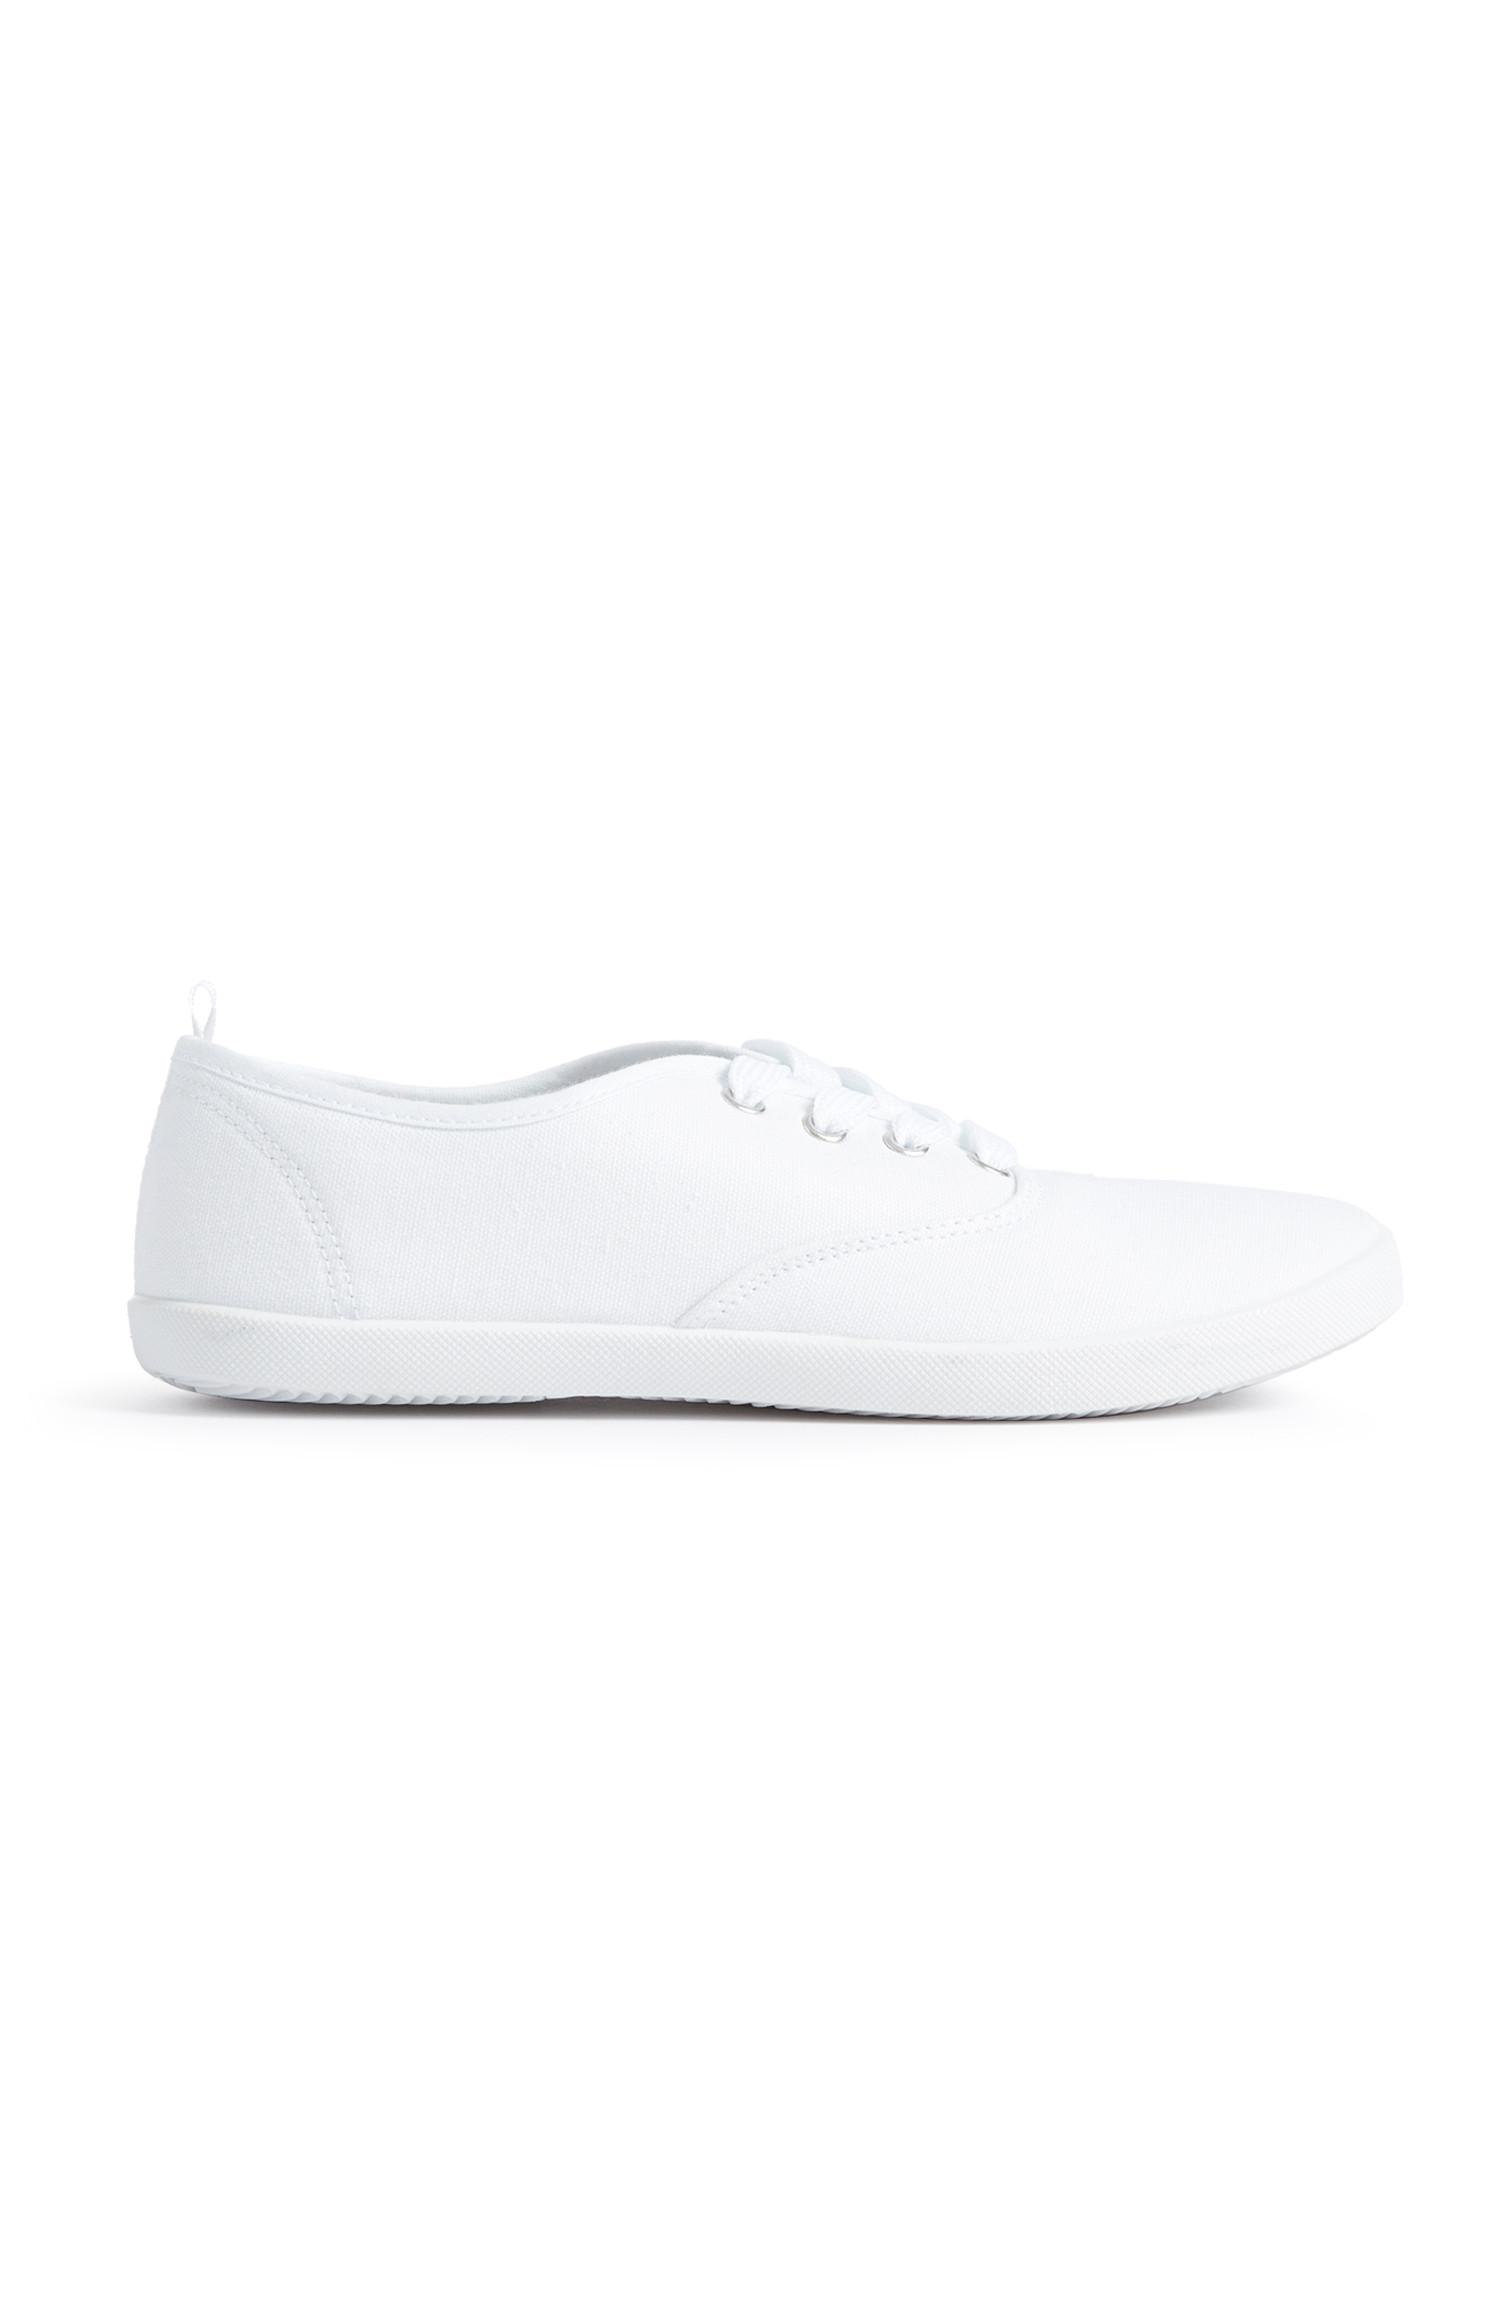 White Canvas Pump